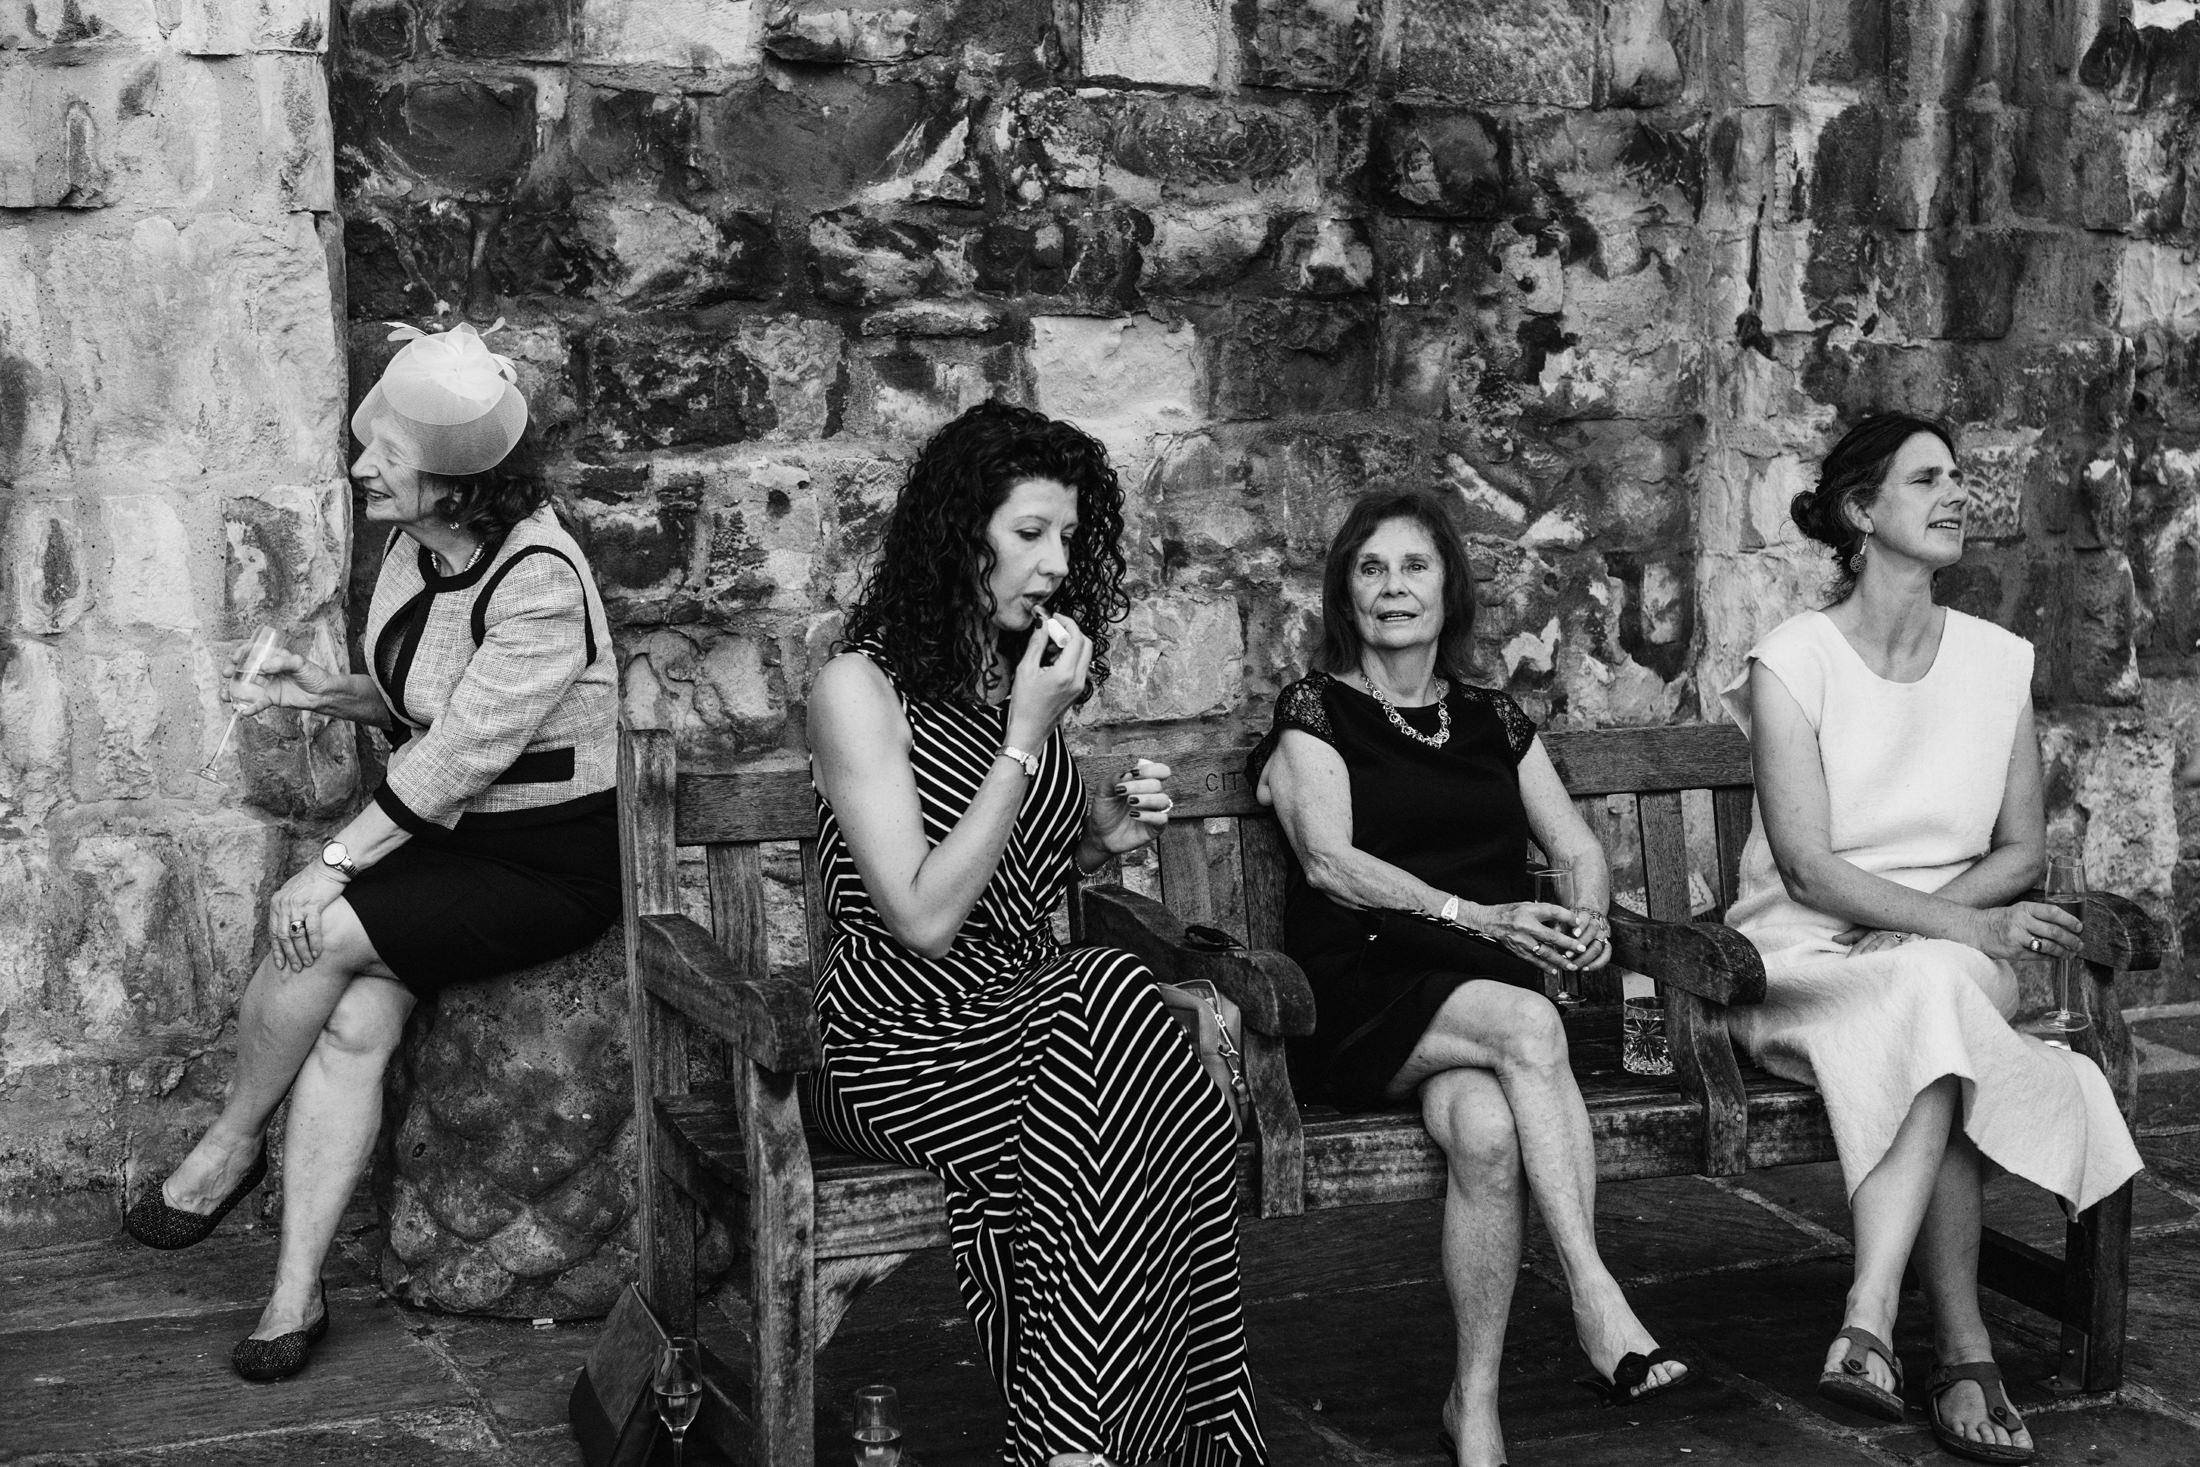 Intimate black & white documentary wedding photograph of guests sitting on a bench at a micro wedding reception. Though they are seated together each is engaged in entirely separate mini-stories from one another